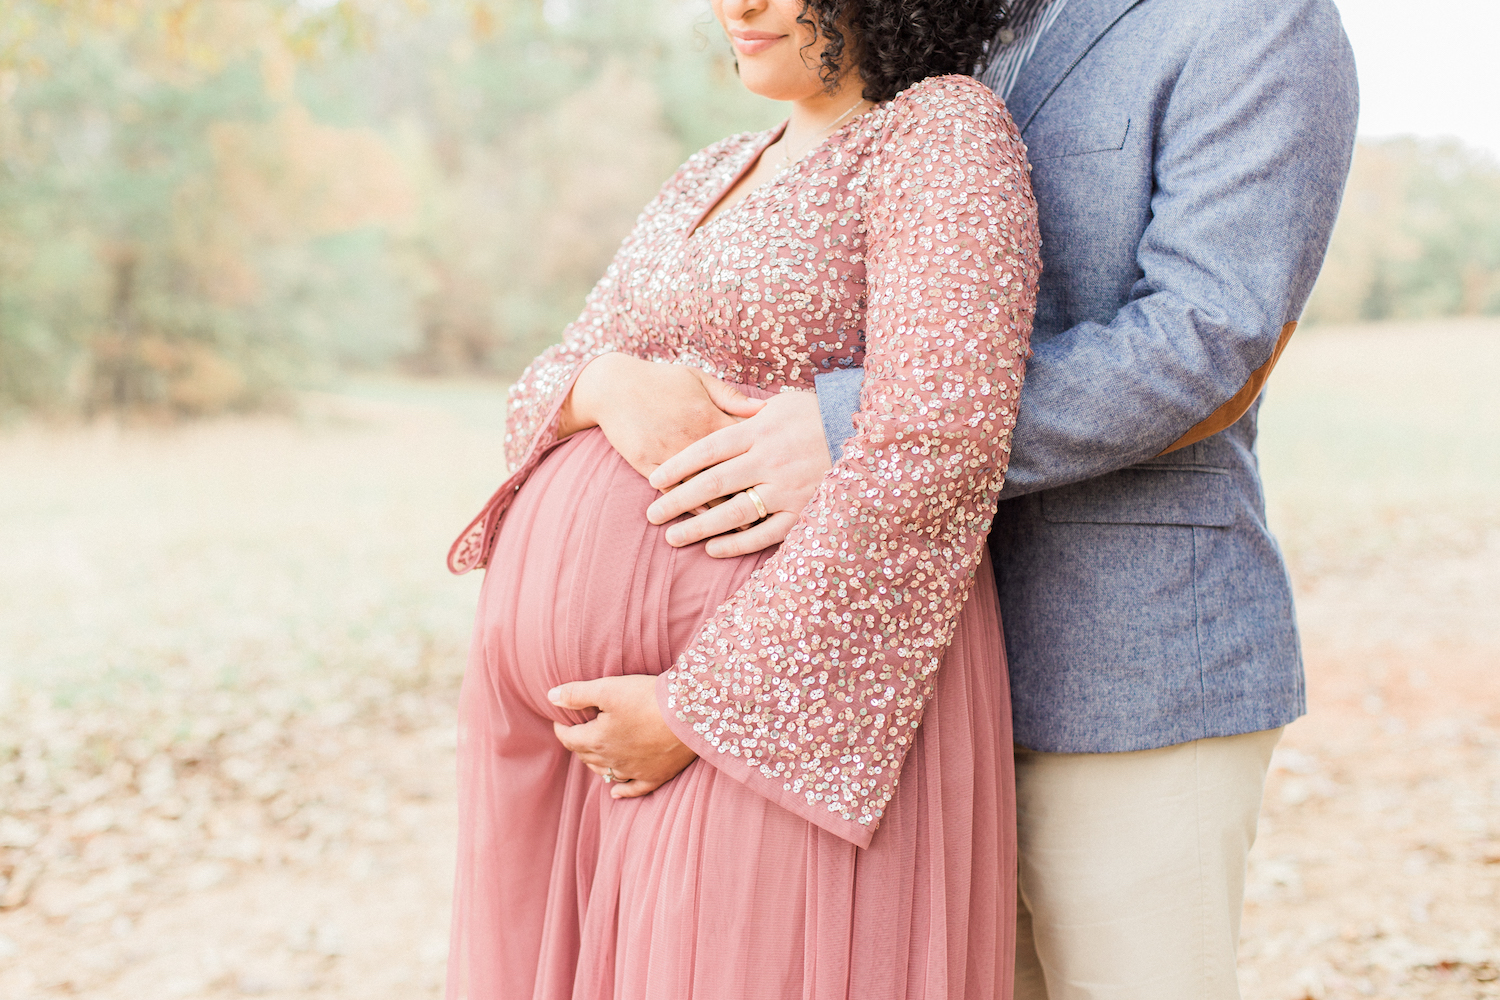 Belly and wedding rings photo romantic maternity session. Sparkly tulle mauve maternity dress. Atlanta Fine Art Maternity Photographer.